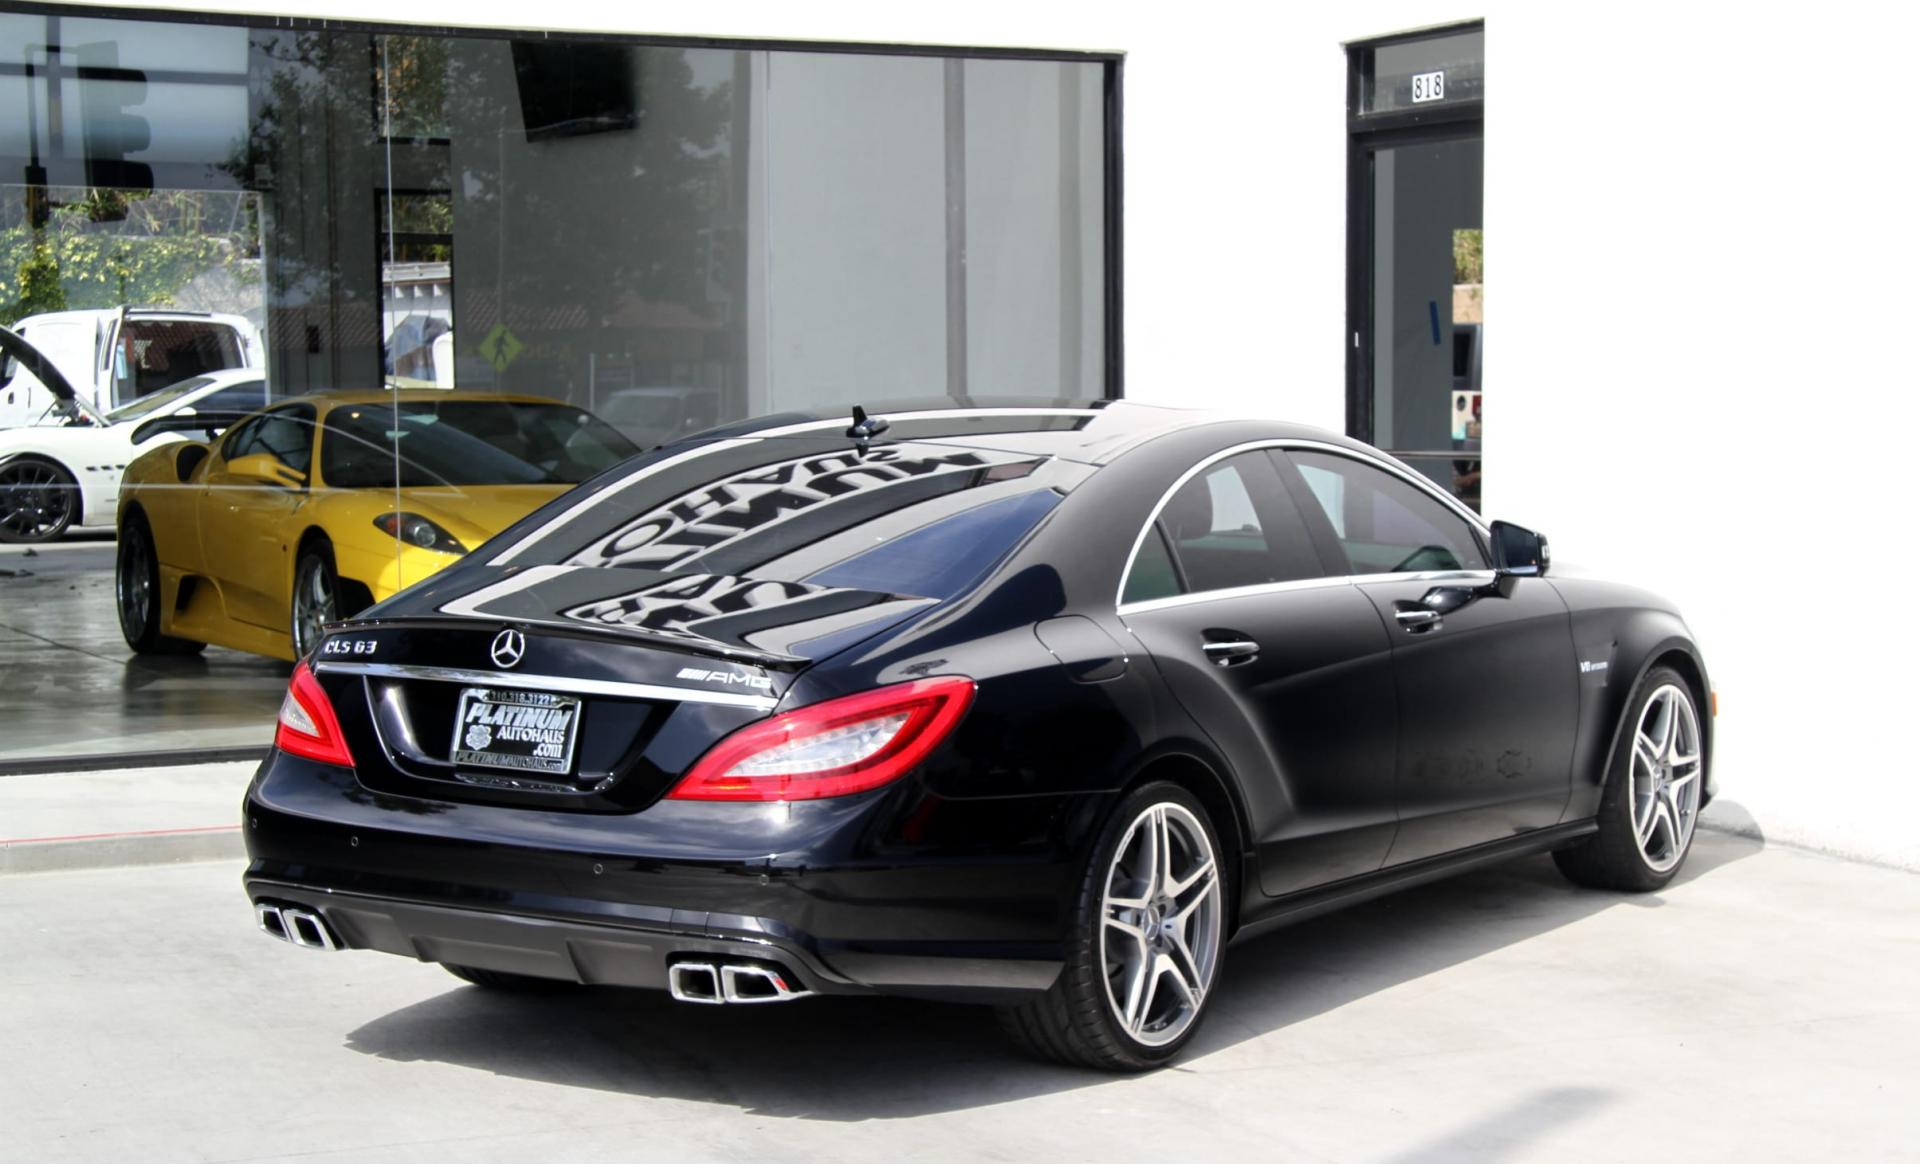 2013 mercedes benz cls 63 amg stock 5867 for sale near for 2013 mercedes benz cls 63 amg